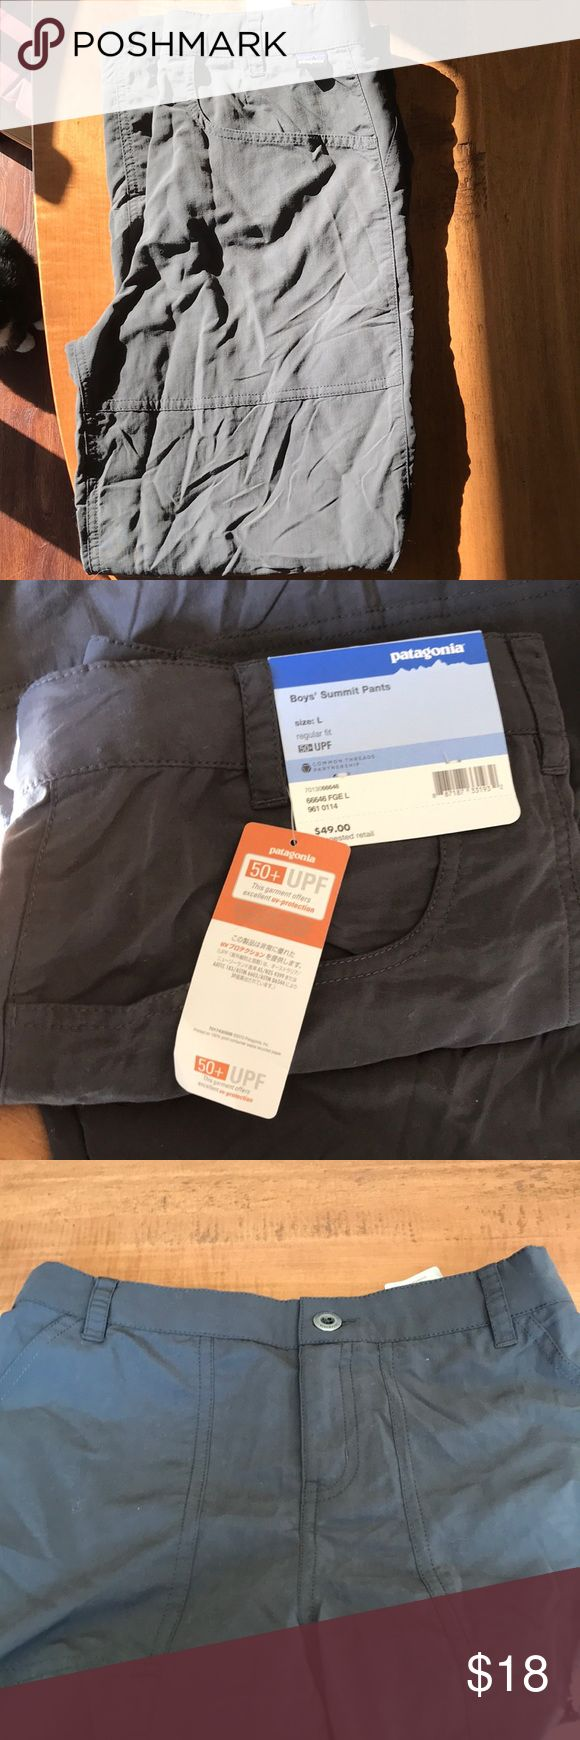 Boys Patagonia pants Size L (12) boys dark grey Patagonia pants. Brand new with tags. Retails for $49.00. Patagonia Bottoms Casual